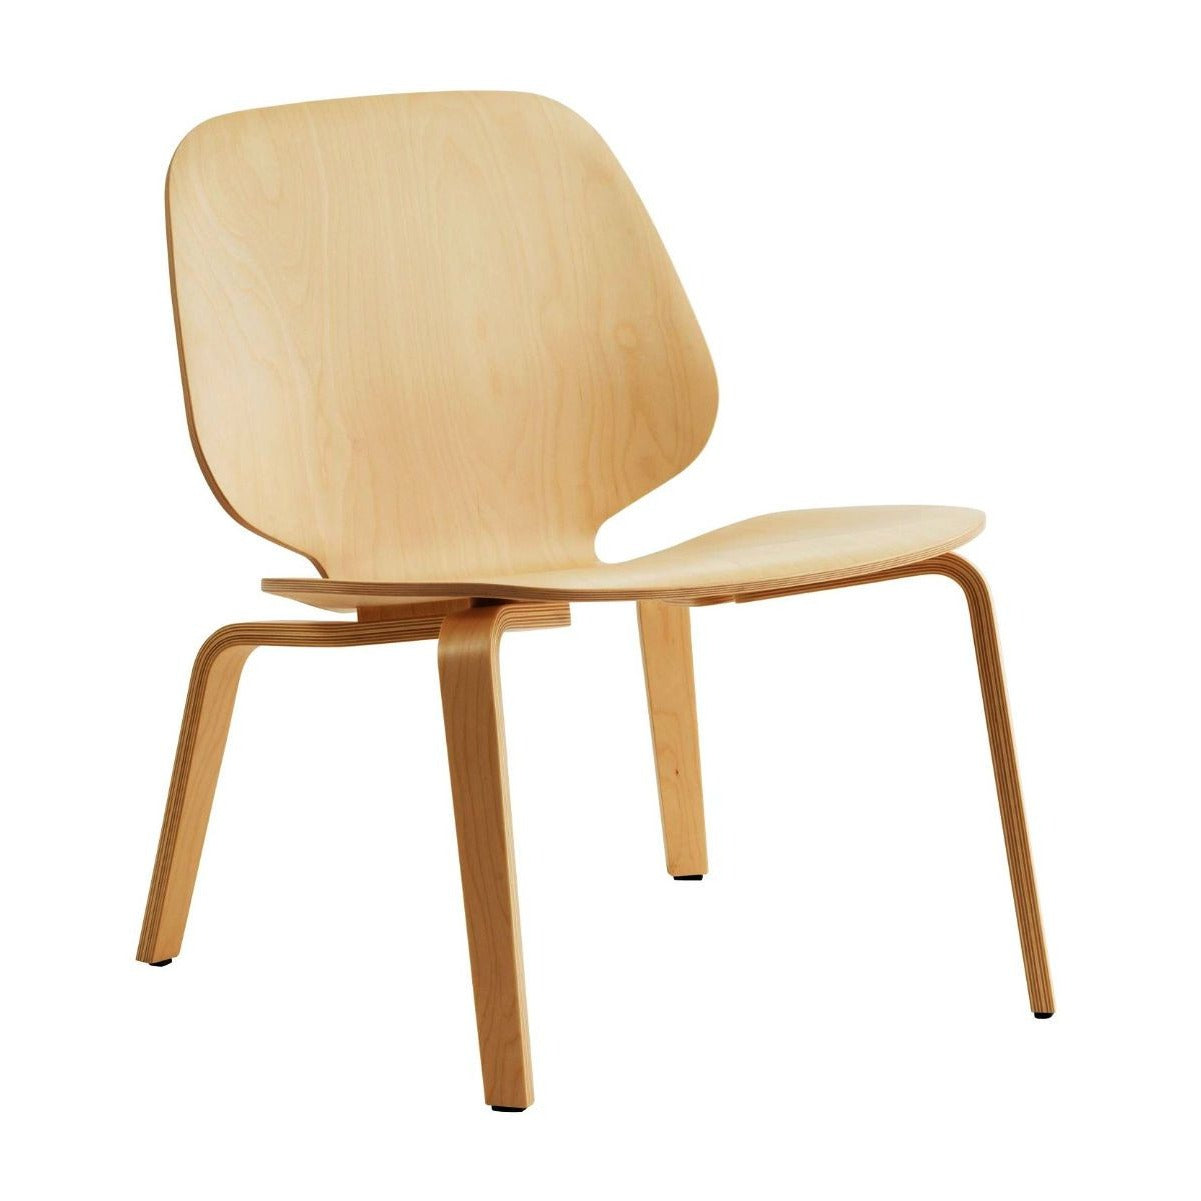 Normann Copenhagen My Chair lounger chair, oak